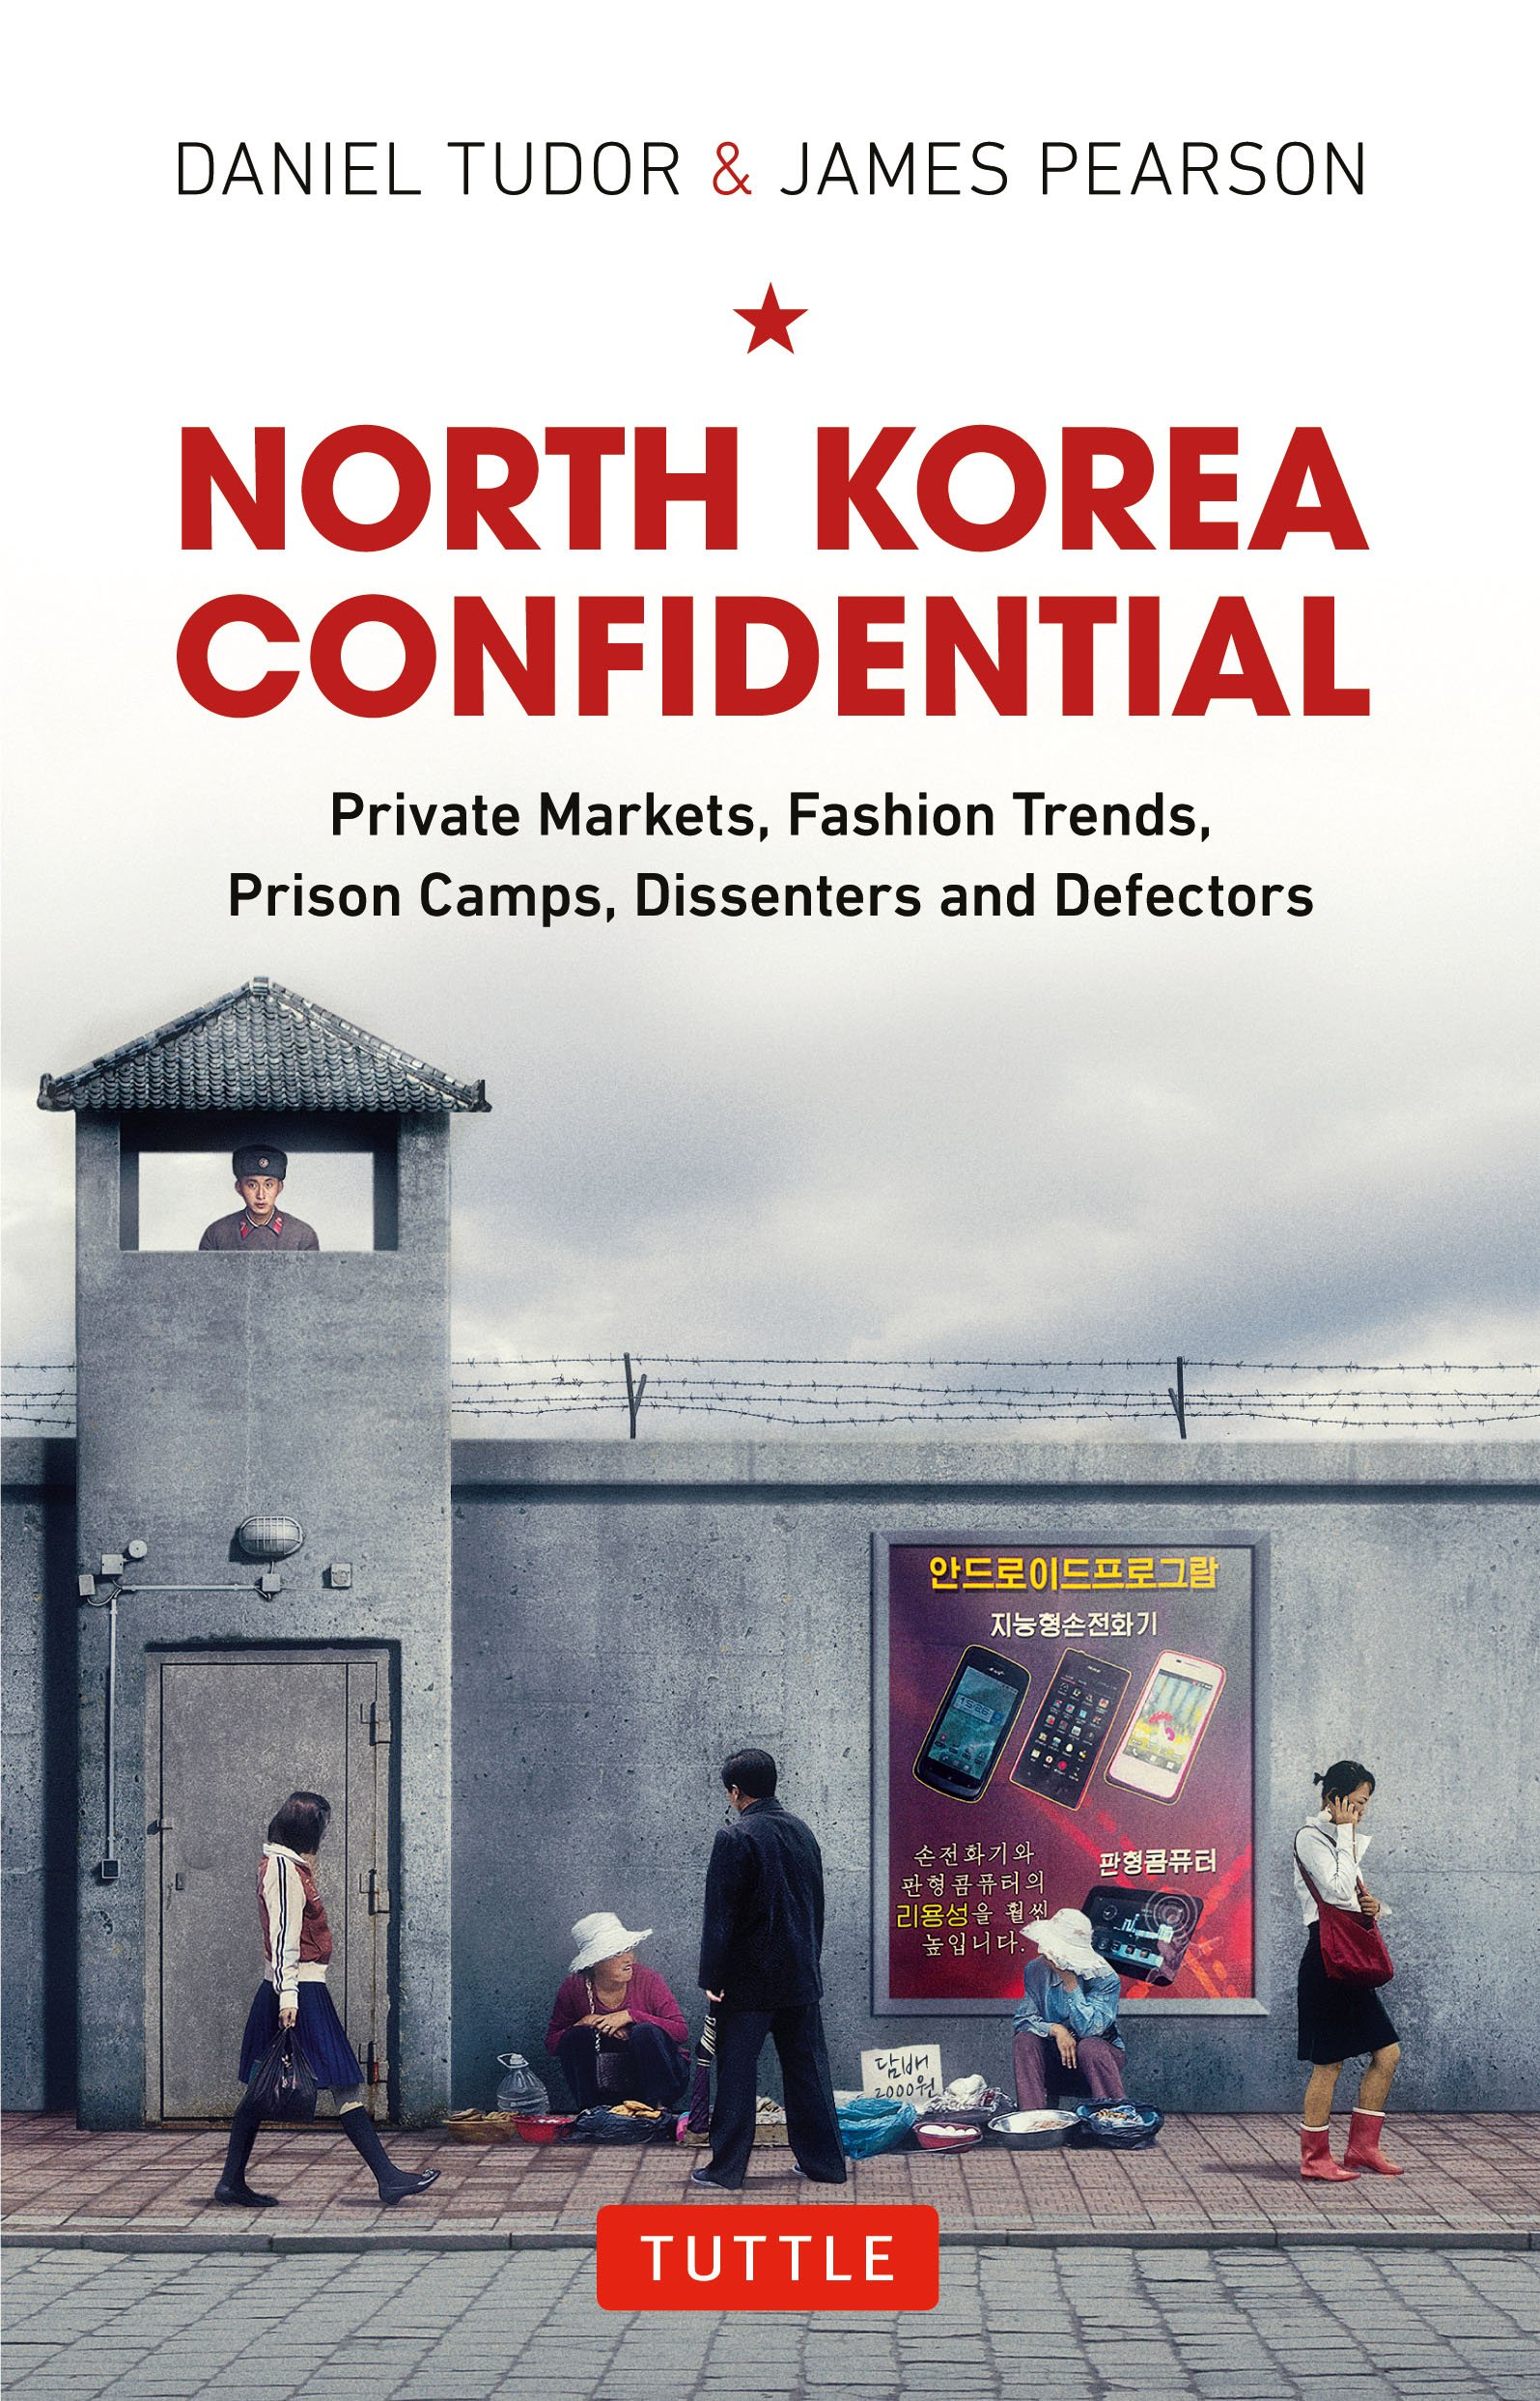 North Korea Confidential - This book answers questions such as: How Does the Leadership Obtain Luxury Goods?